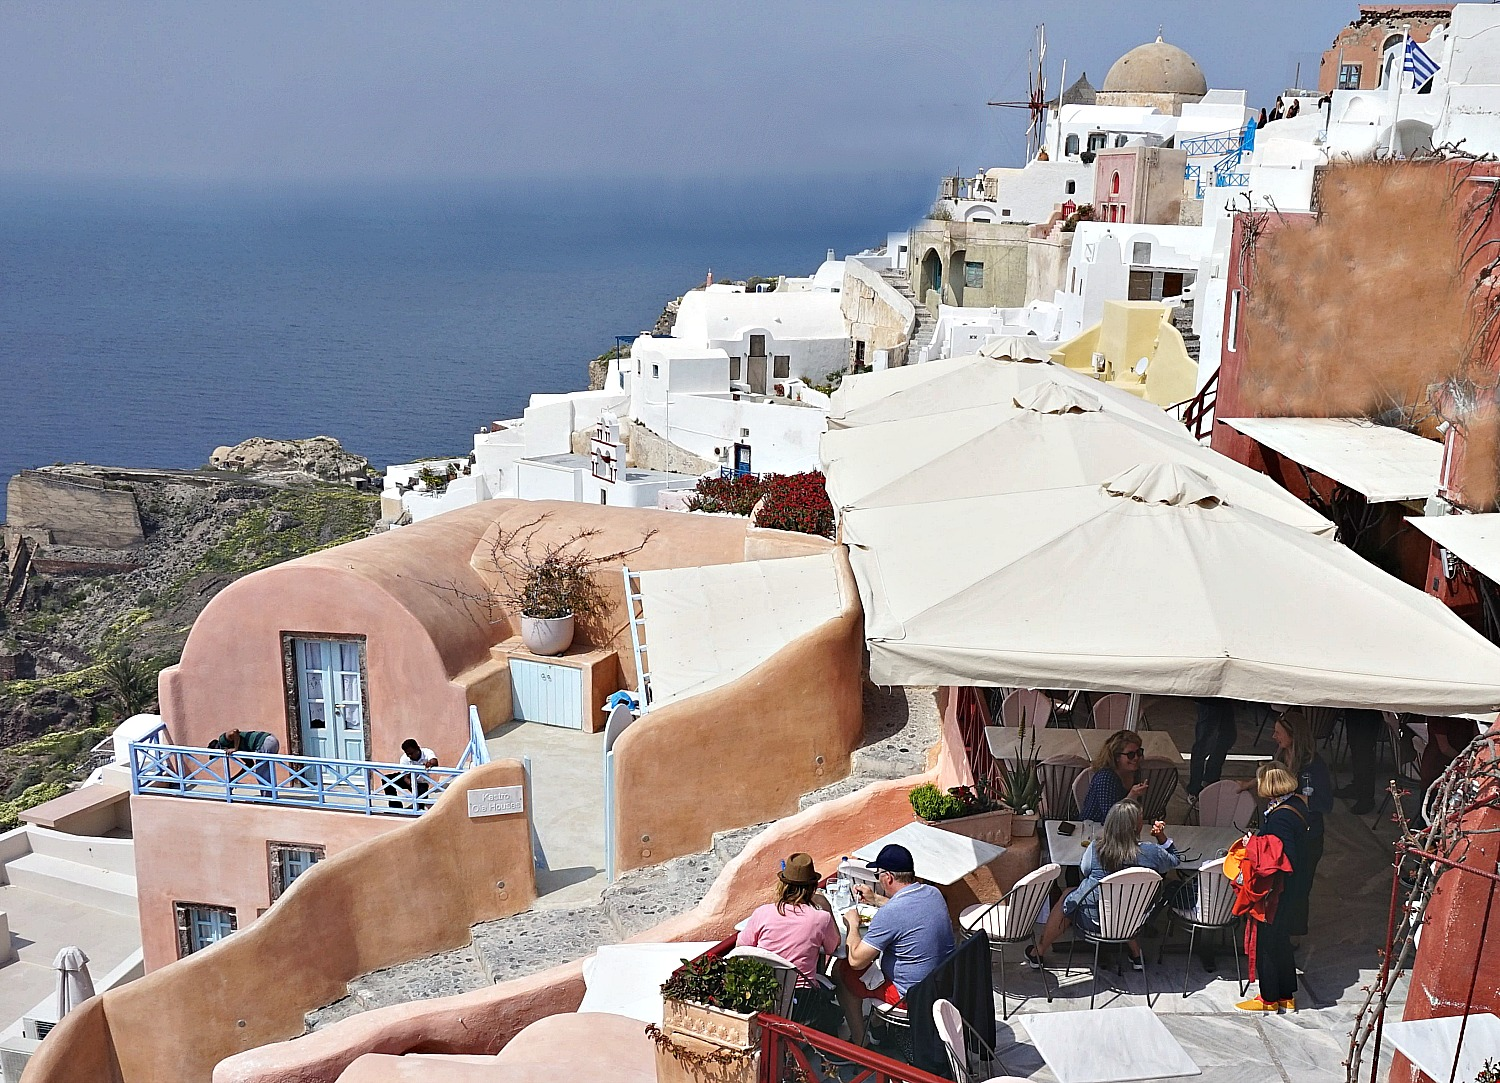 An outdoor dining in Oia Santorini.